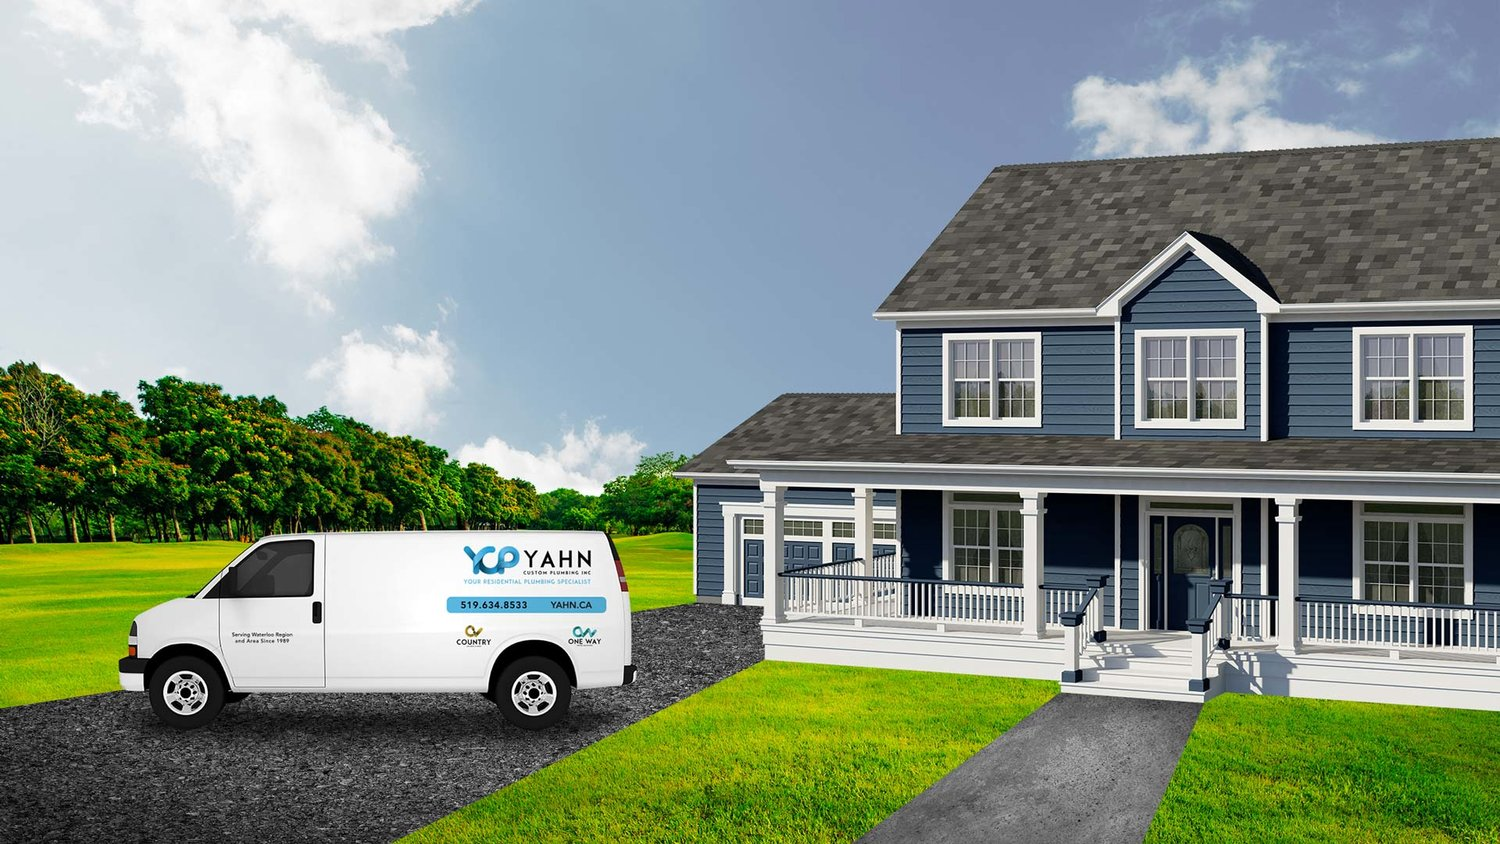 About Us — Yahn Custom Plumbing